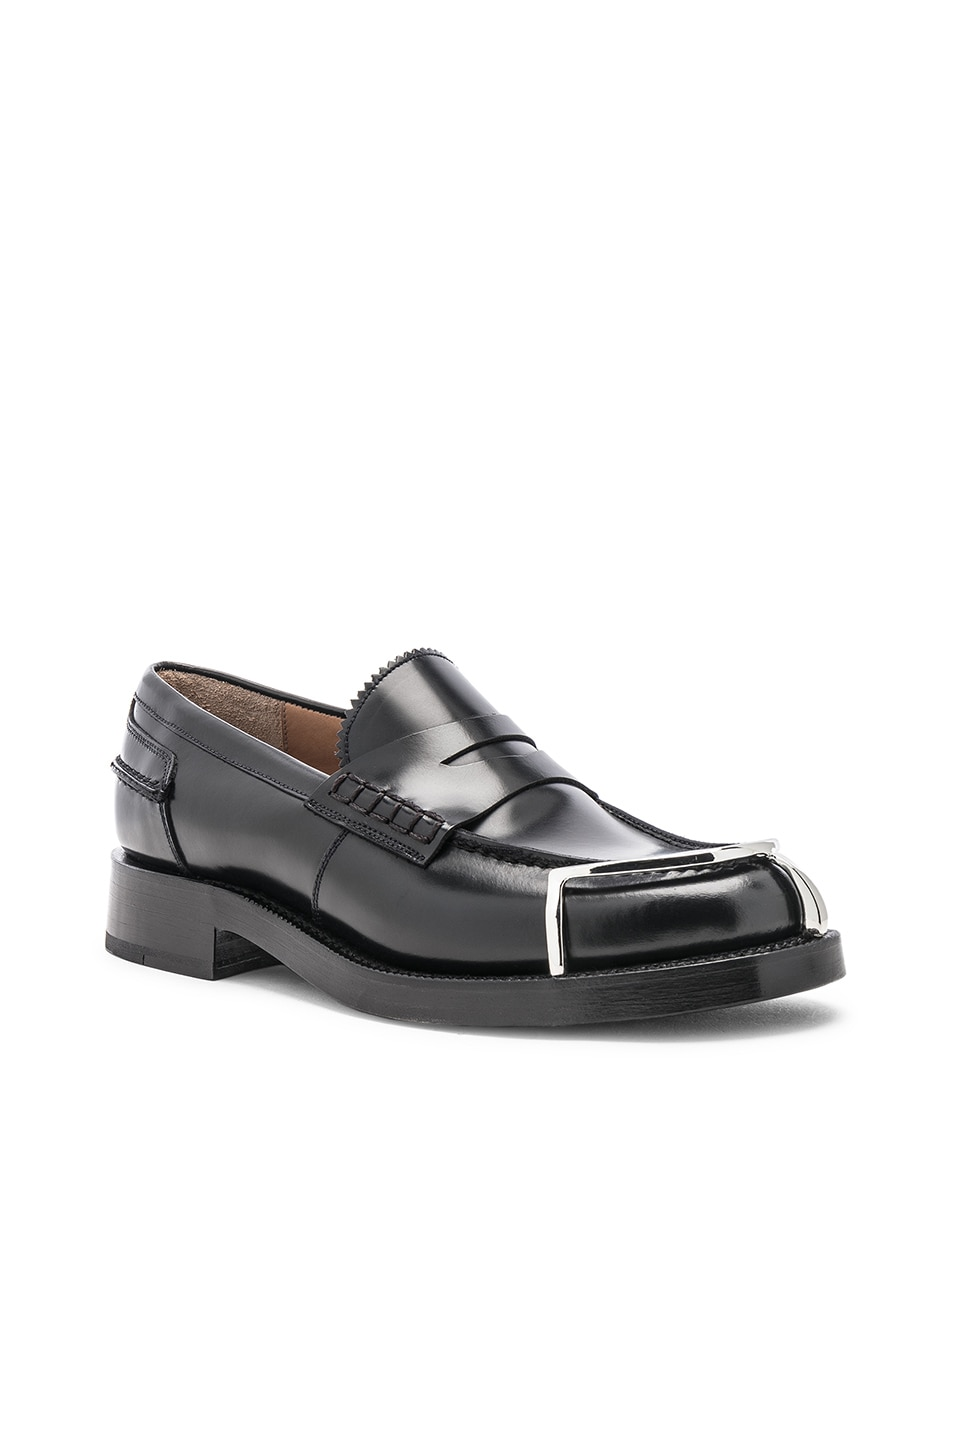 Image 2 of Alexander Wang Carter Spazzolato Loafer in Black